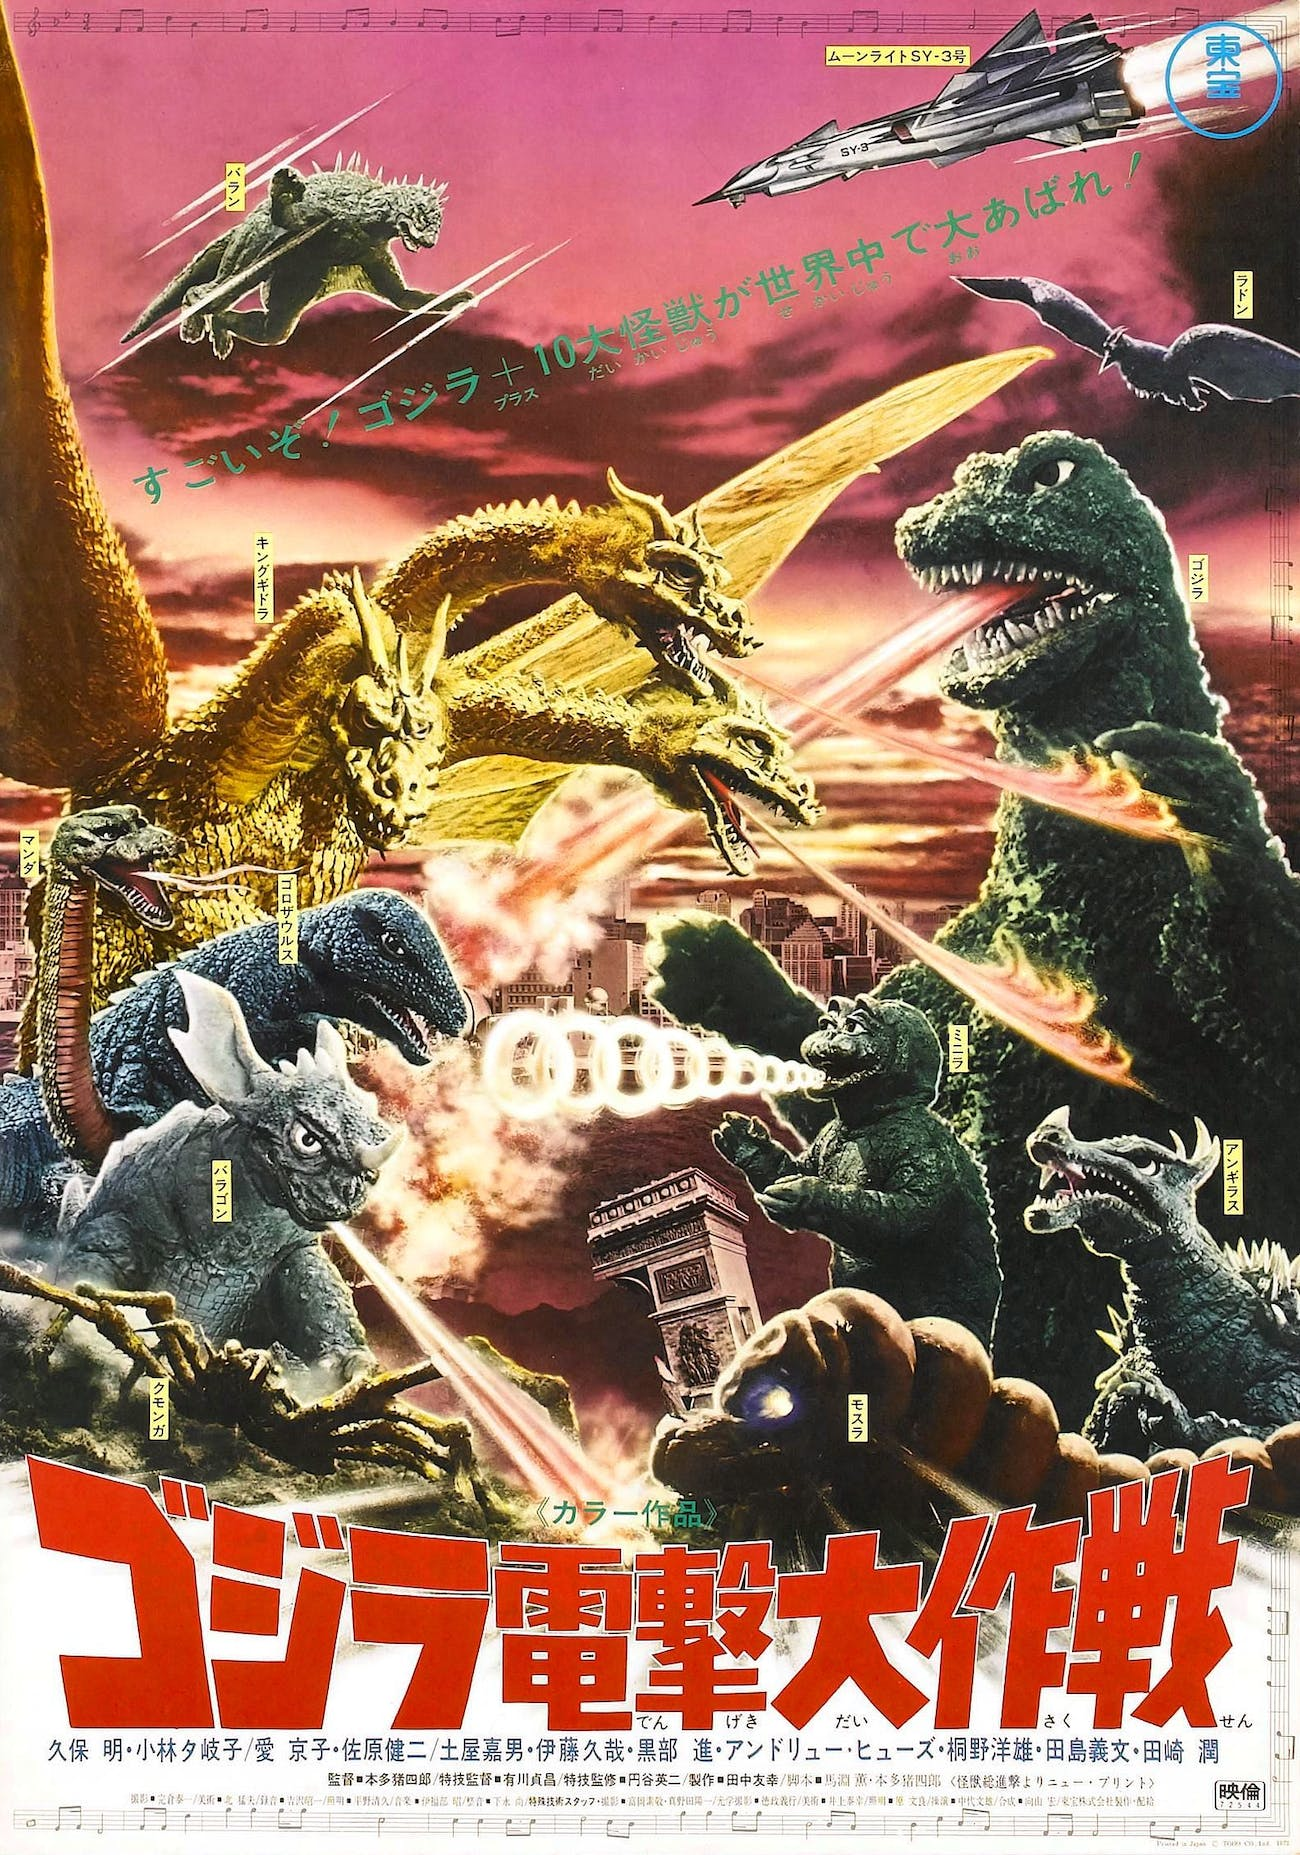 Kong: Skull Island Japan Godzilla Posters Destroy All Monsters